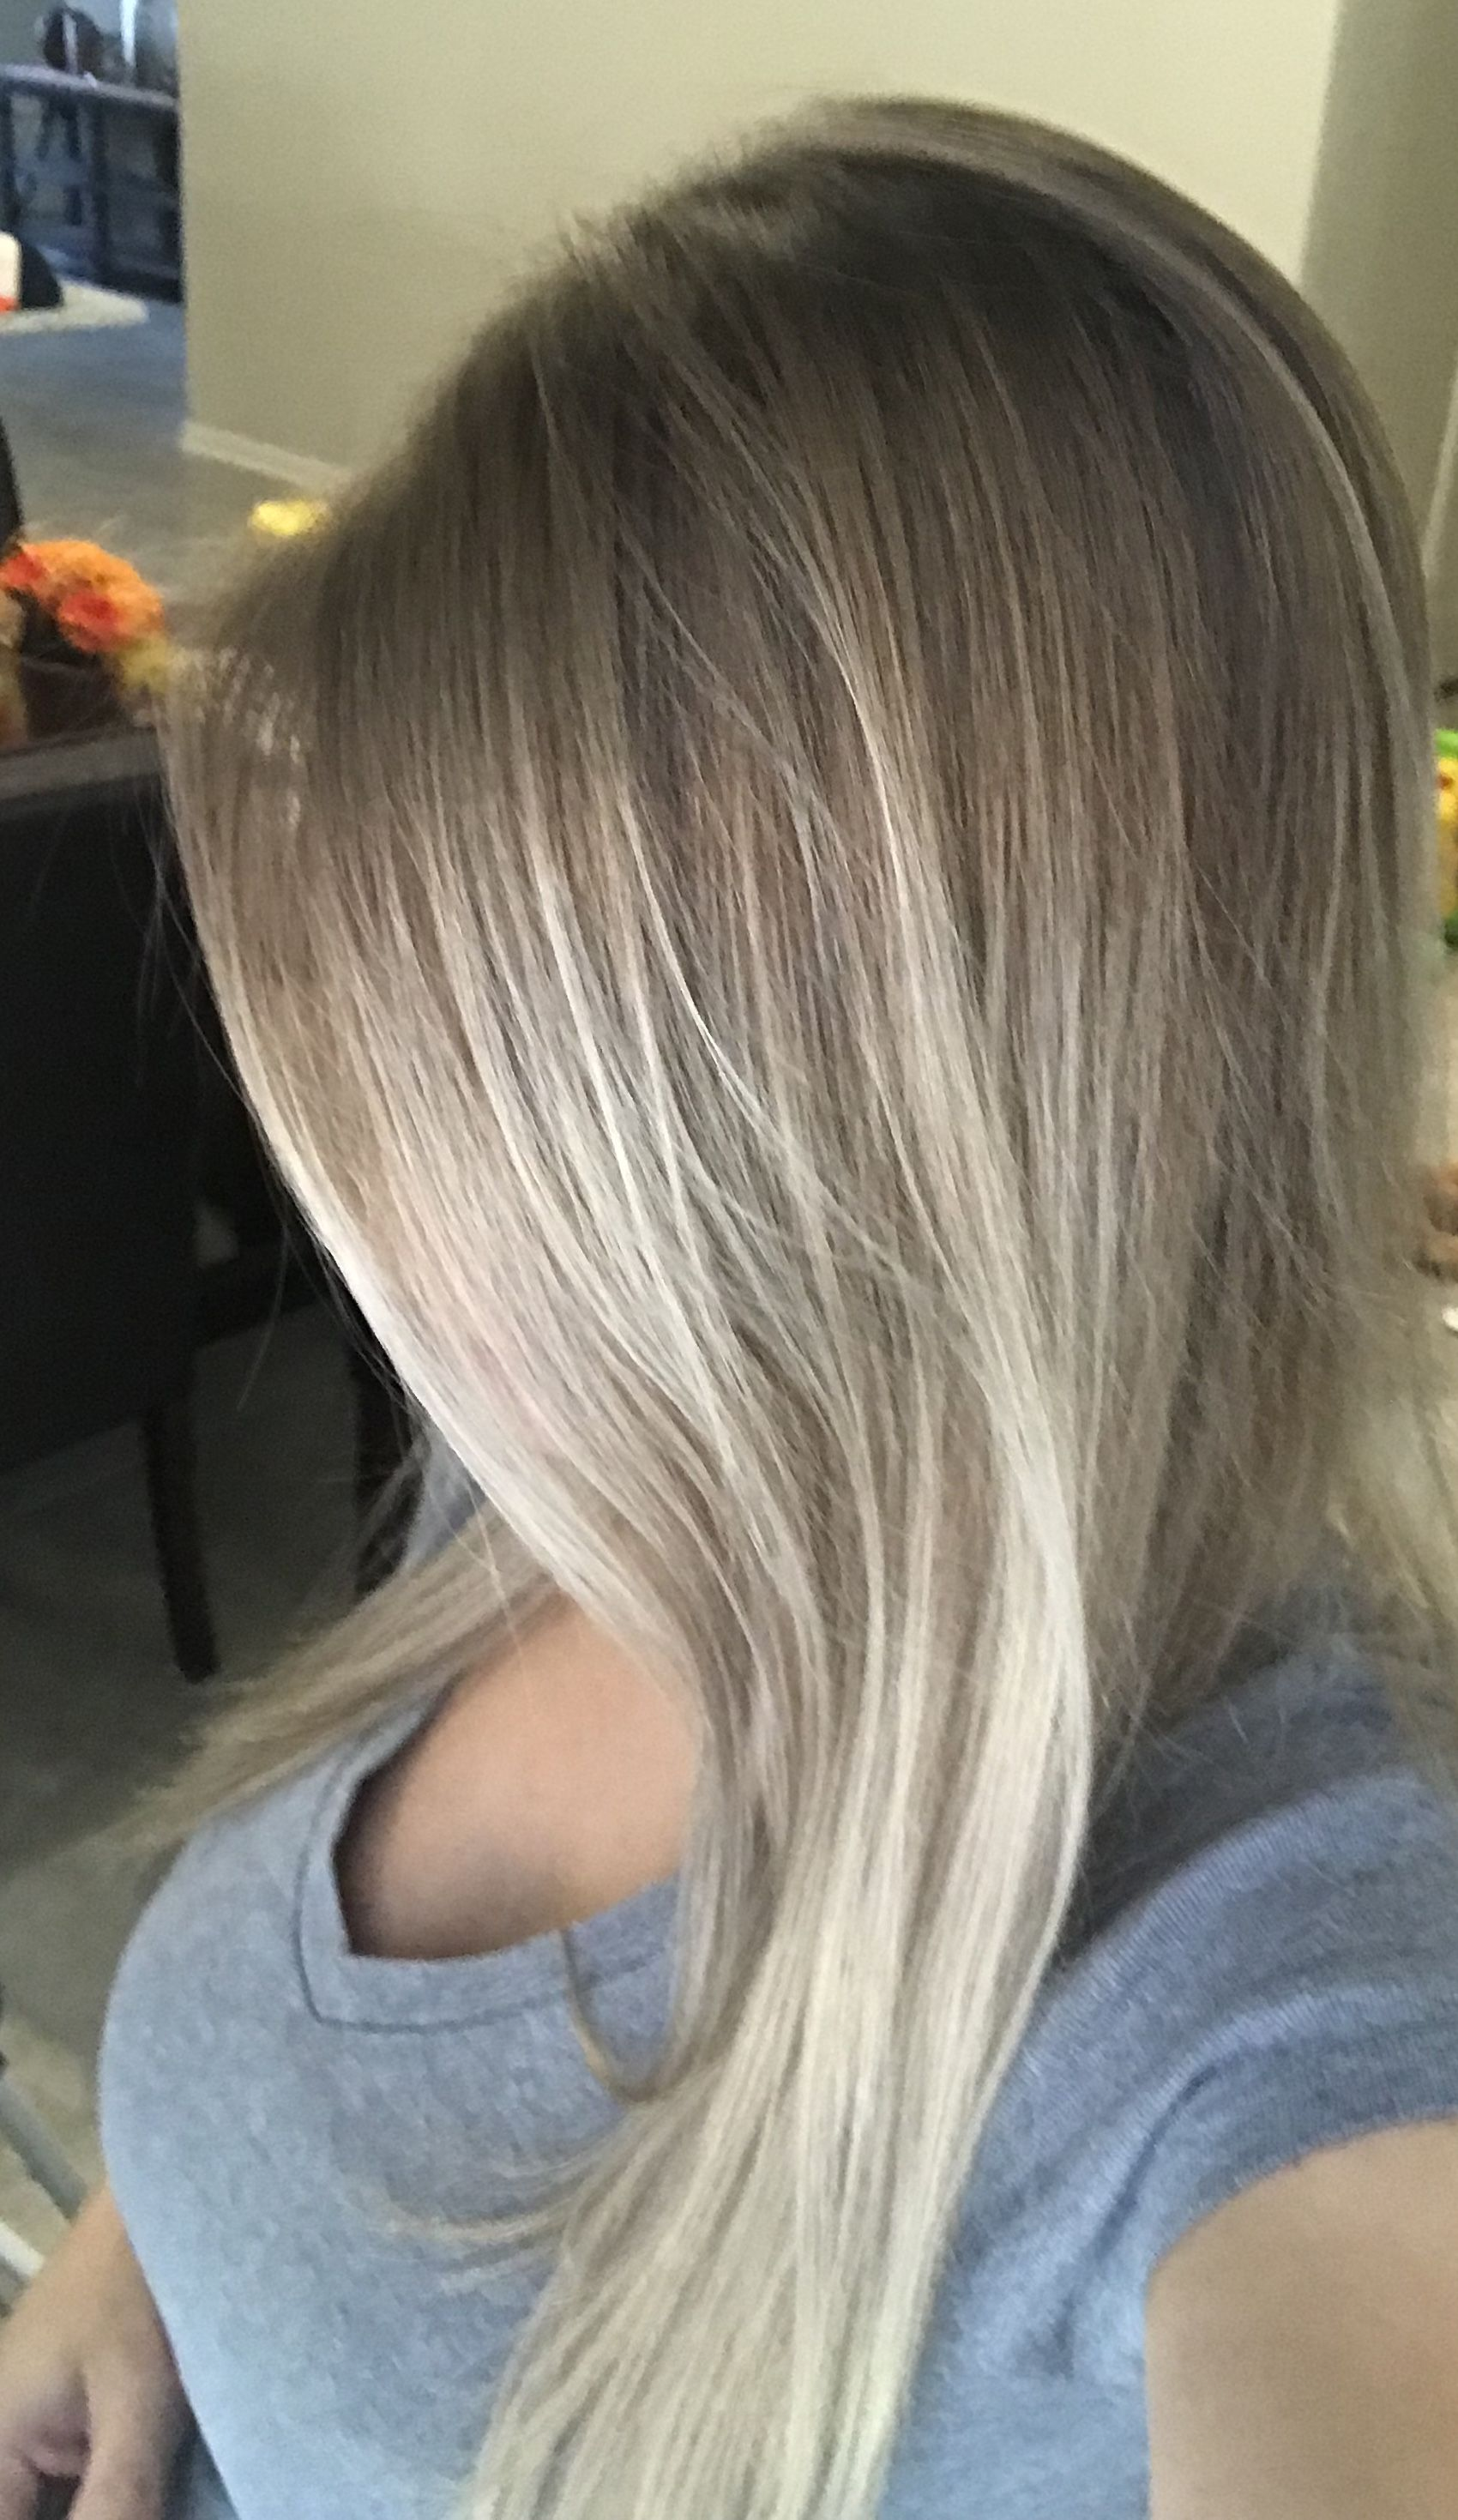 Wella T35 Toner I Put This On My Faded And Yellowing Balayage And Love The Soft Neutral Results I Mixed It With A 10 V An Balayage Bleached Hair Hair Styles